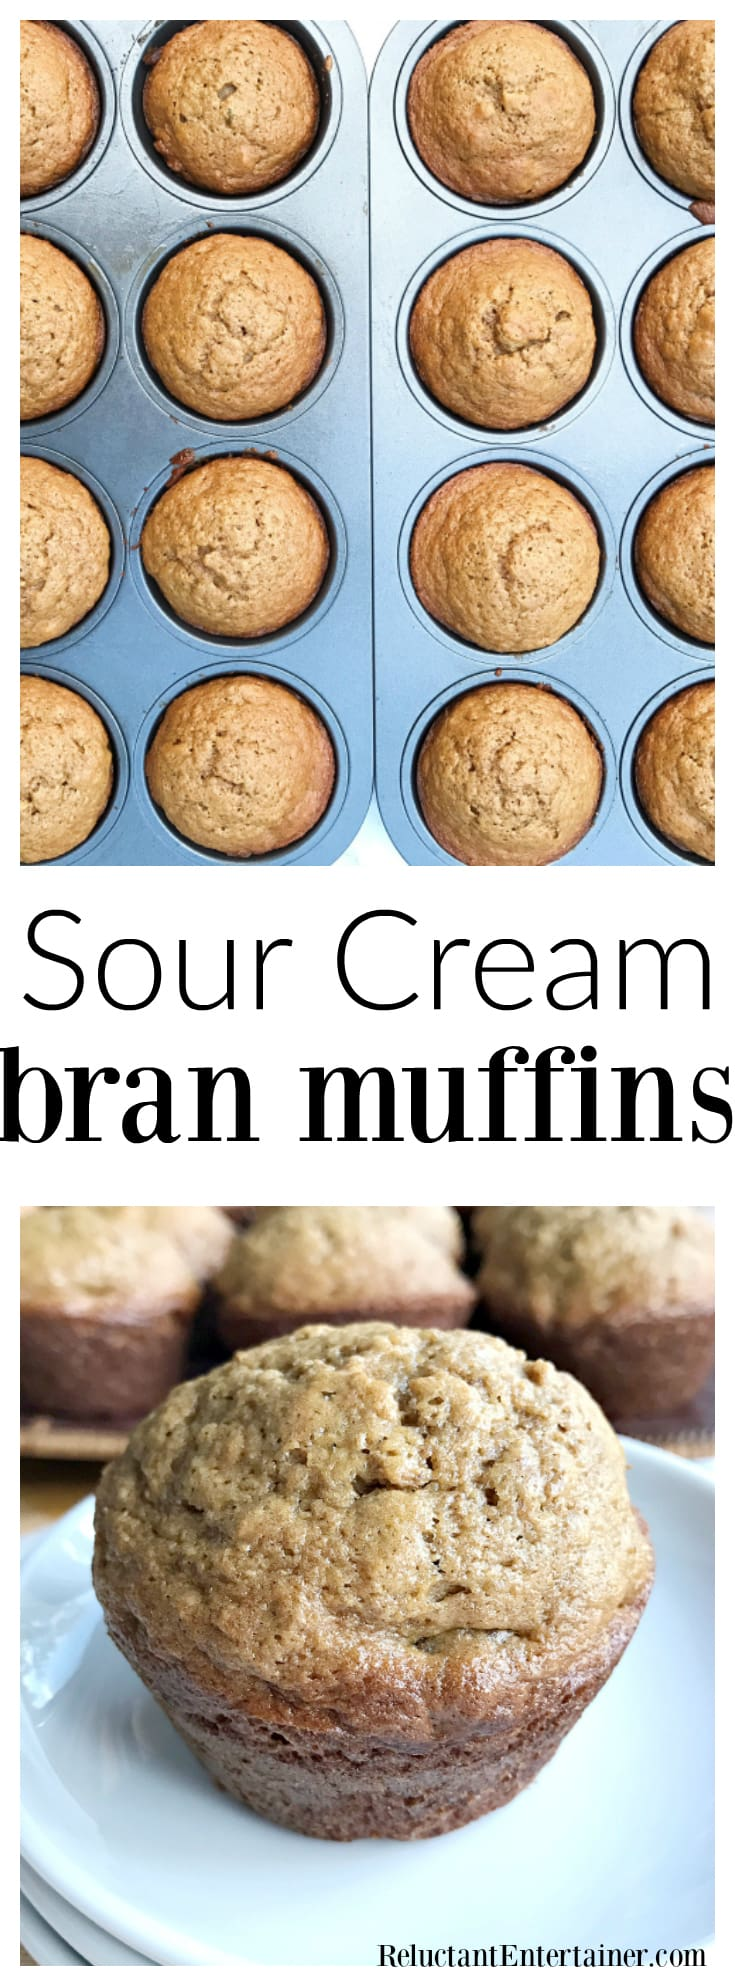 Sour Cream Bran Muffins Recipe at ReluctantEntertainer.com